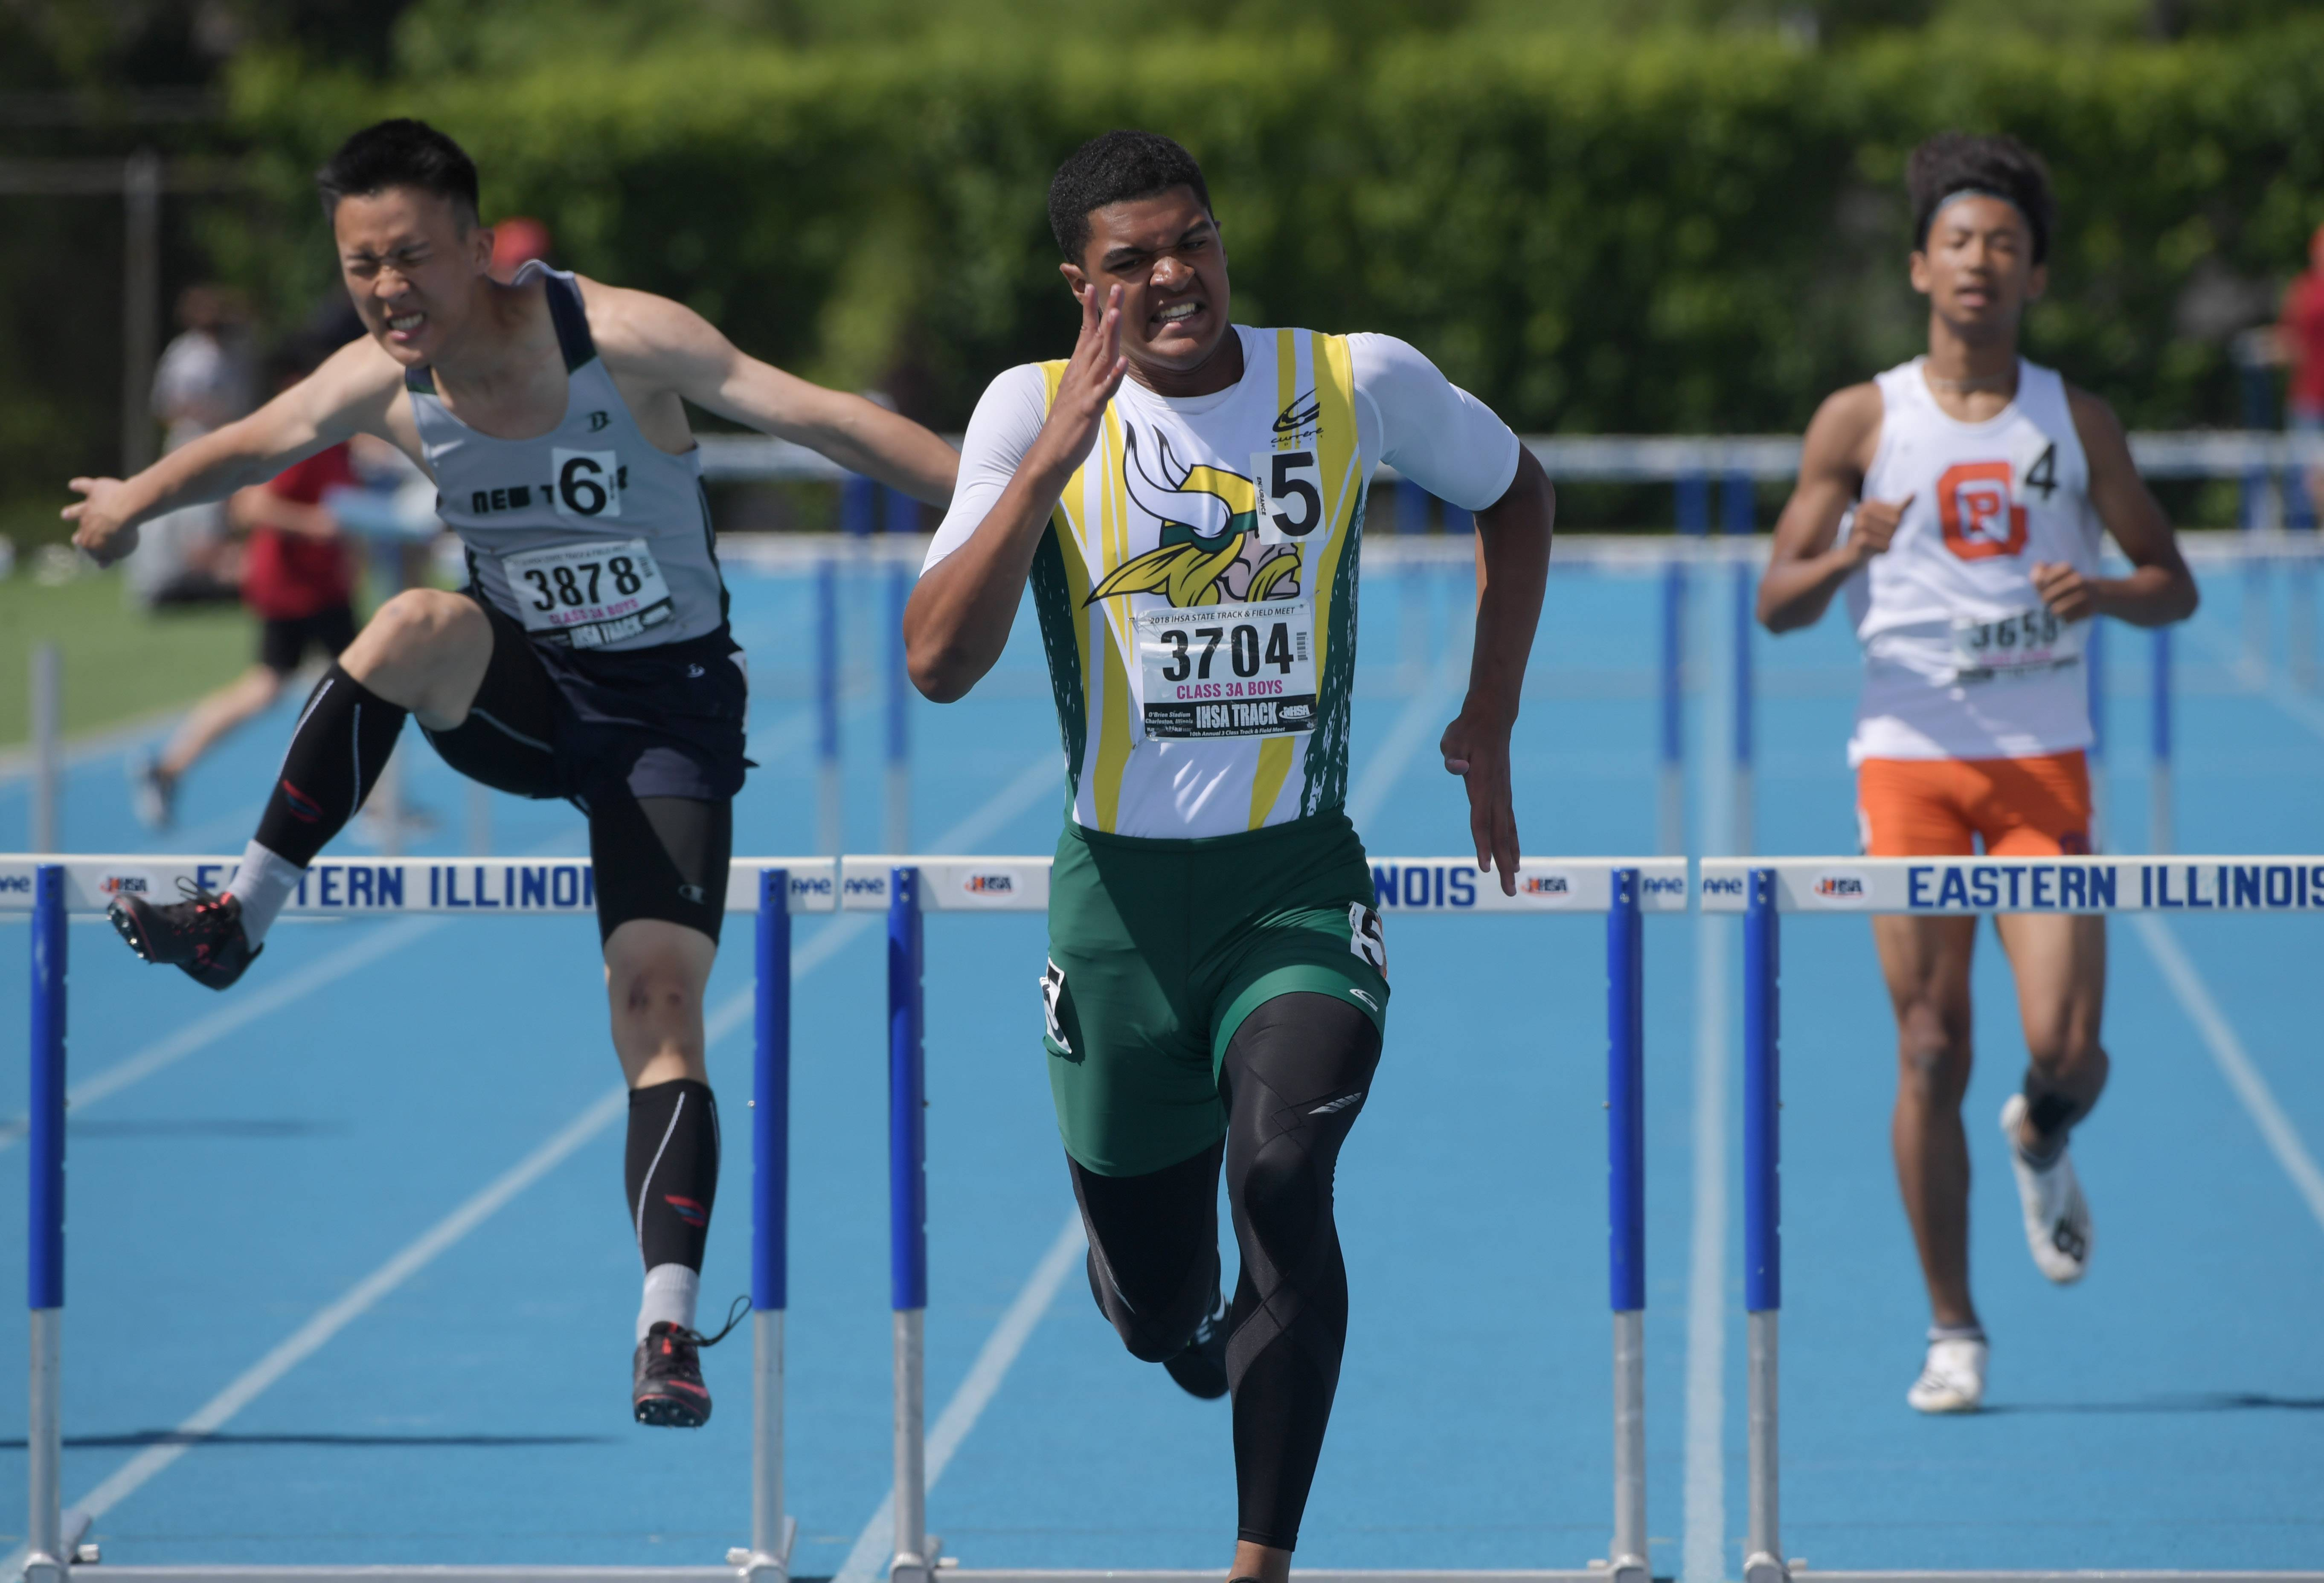 Boys track and field: Jackson's gold medal wait is over